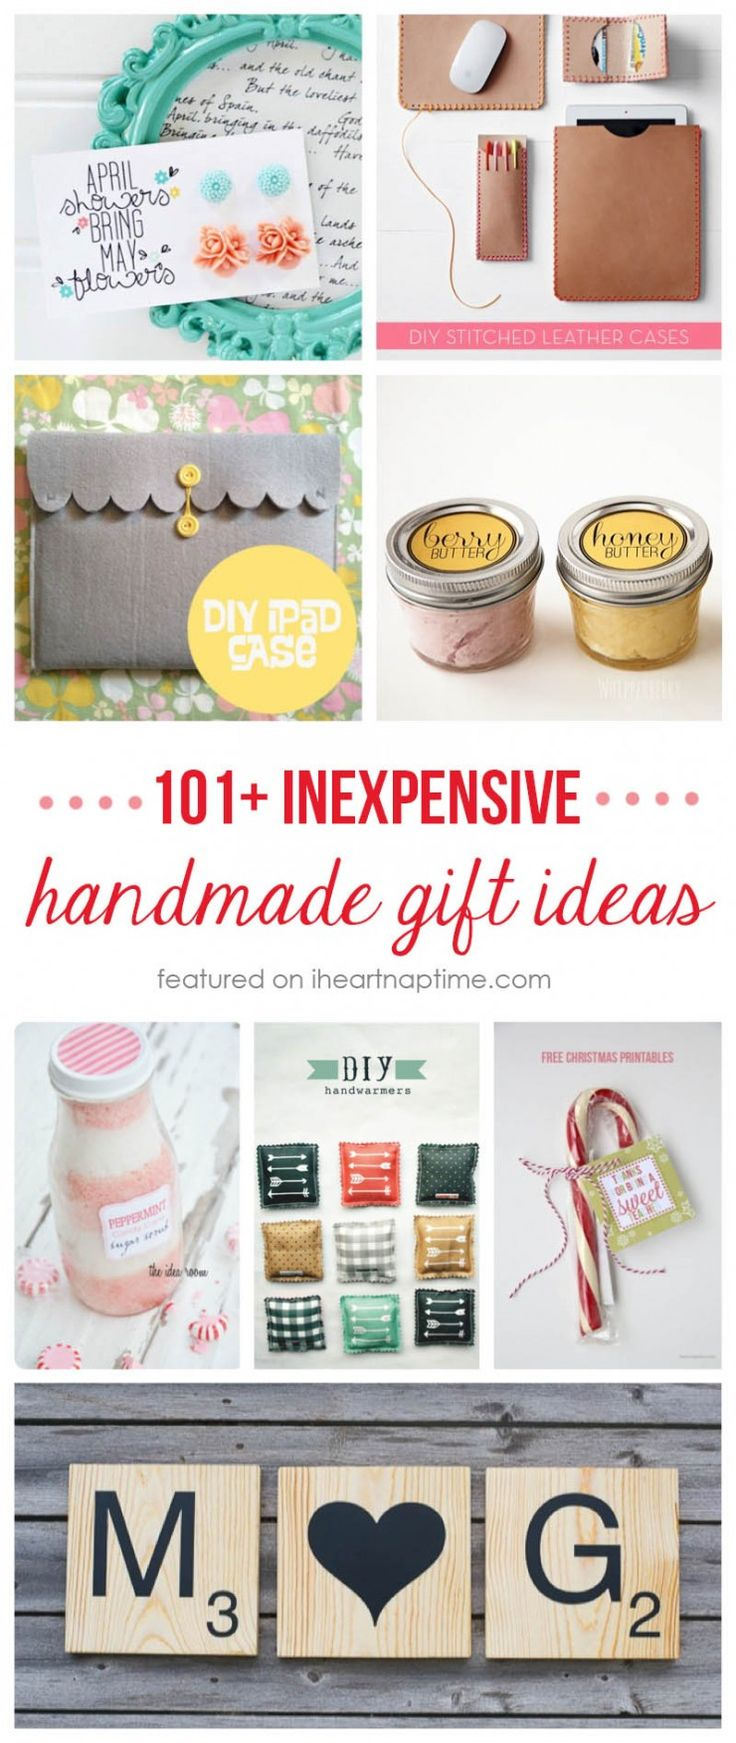 50 Homemade Gift Ideas To Make For Under 5 The Inspiration Board Homemade Gifts Handmade Christmas Gifts Craft Gifts